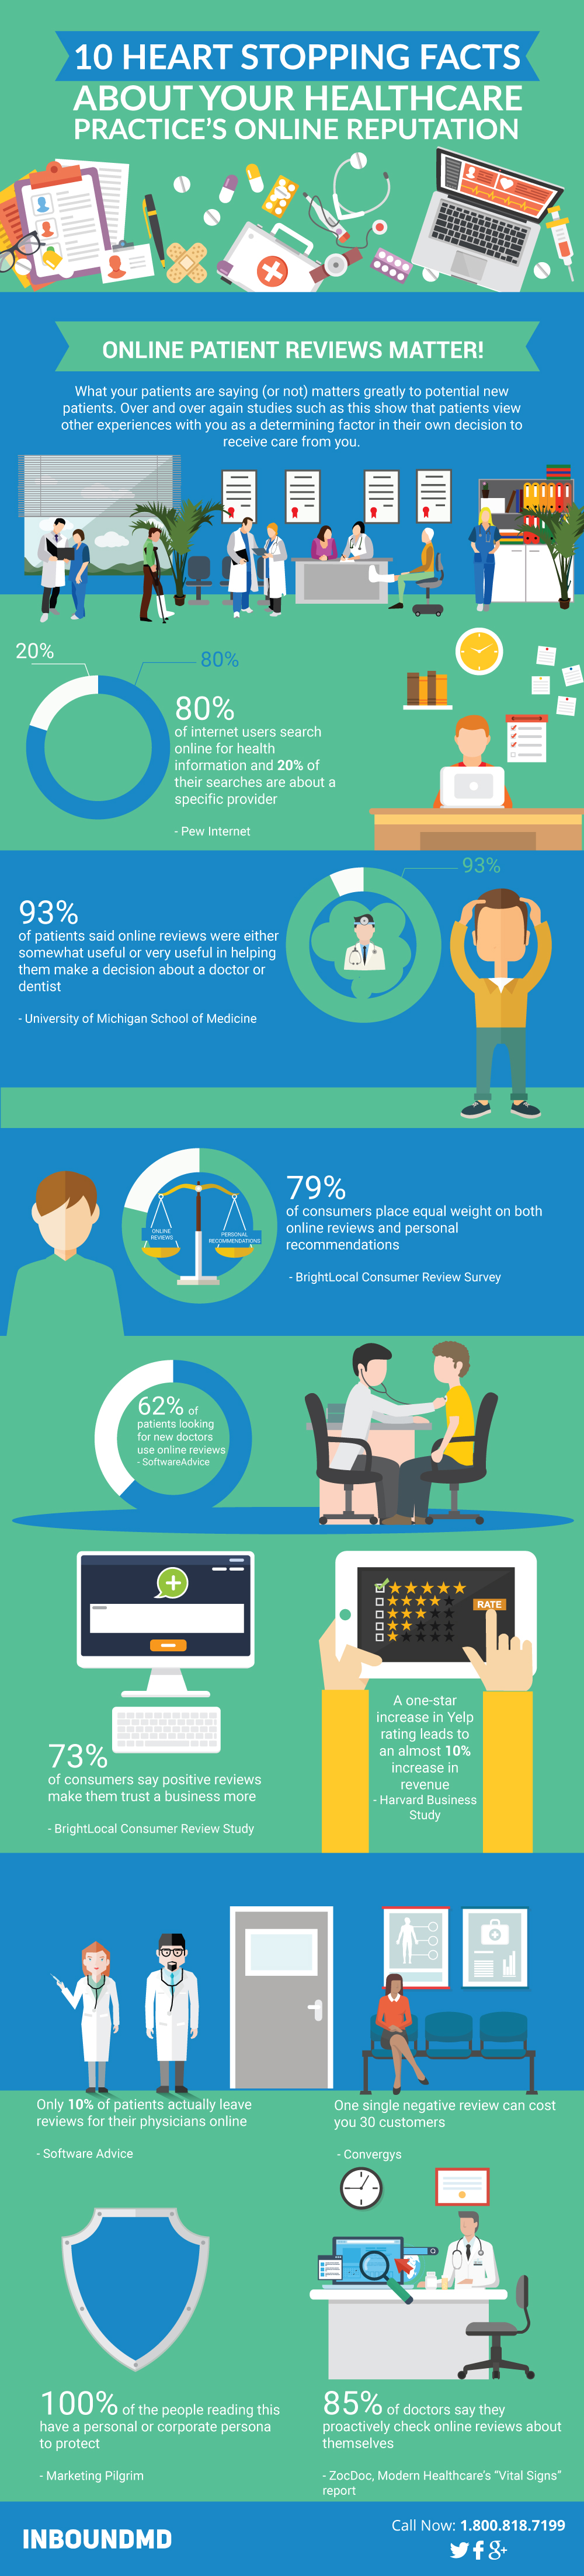 facts about healthcare practice online reputation infographic